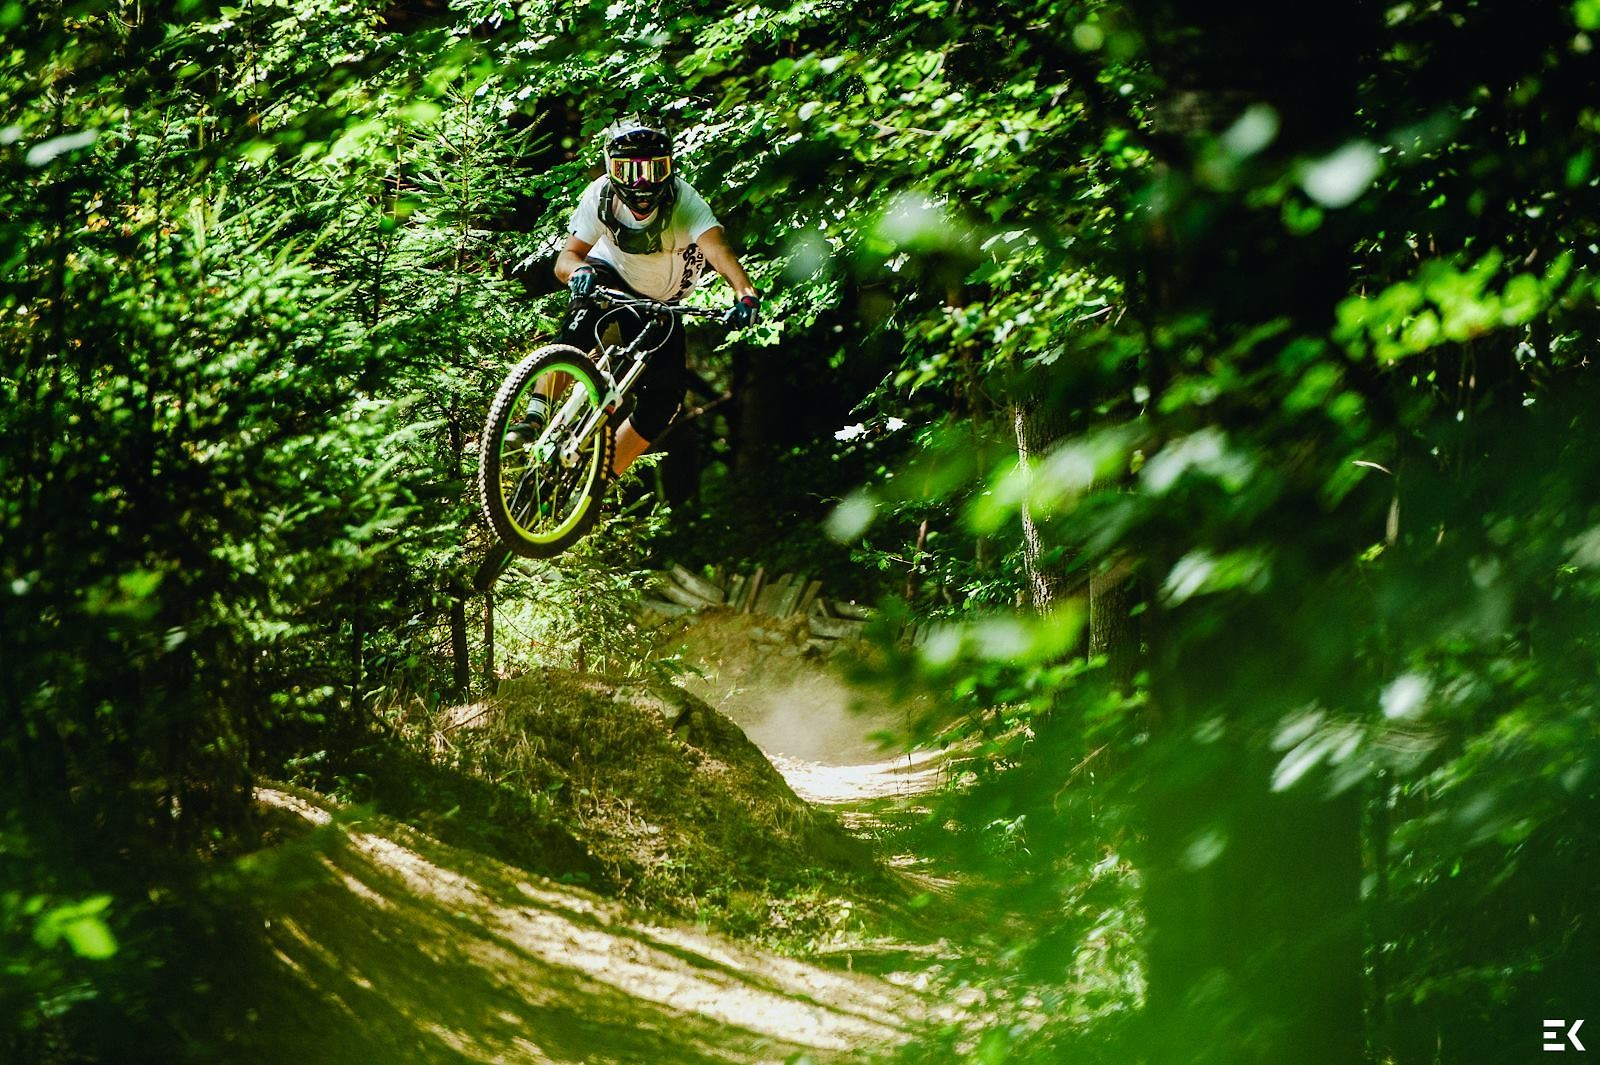 Green power! - Banan - Mountain Biking Pictures - Vital MTB